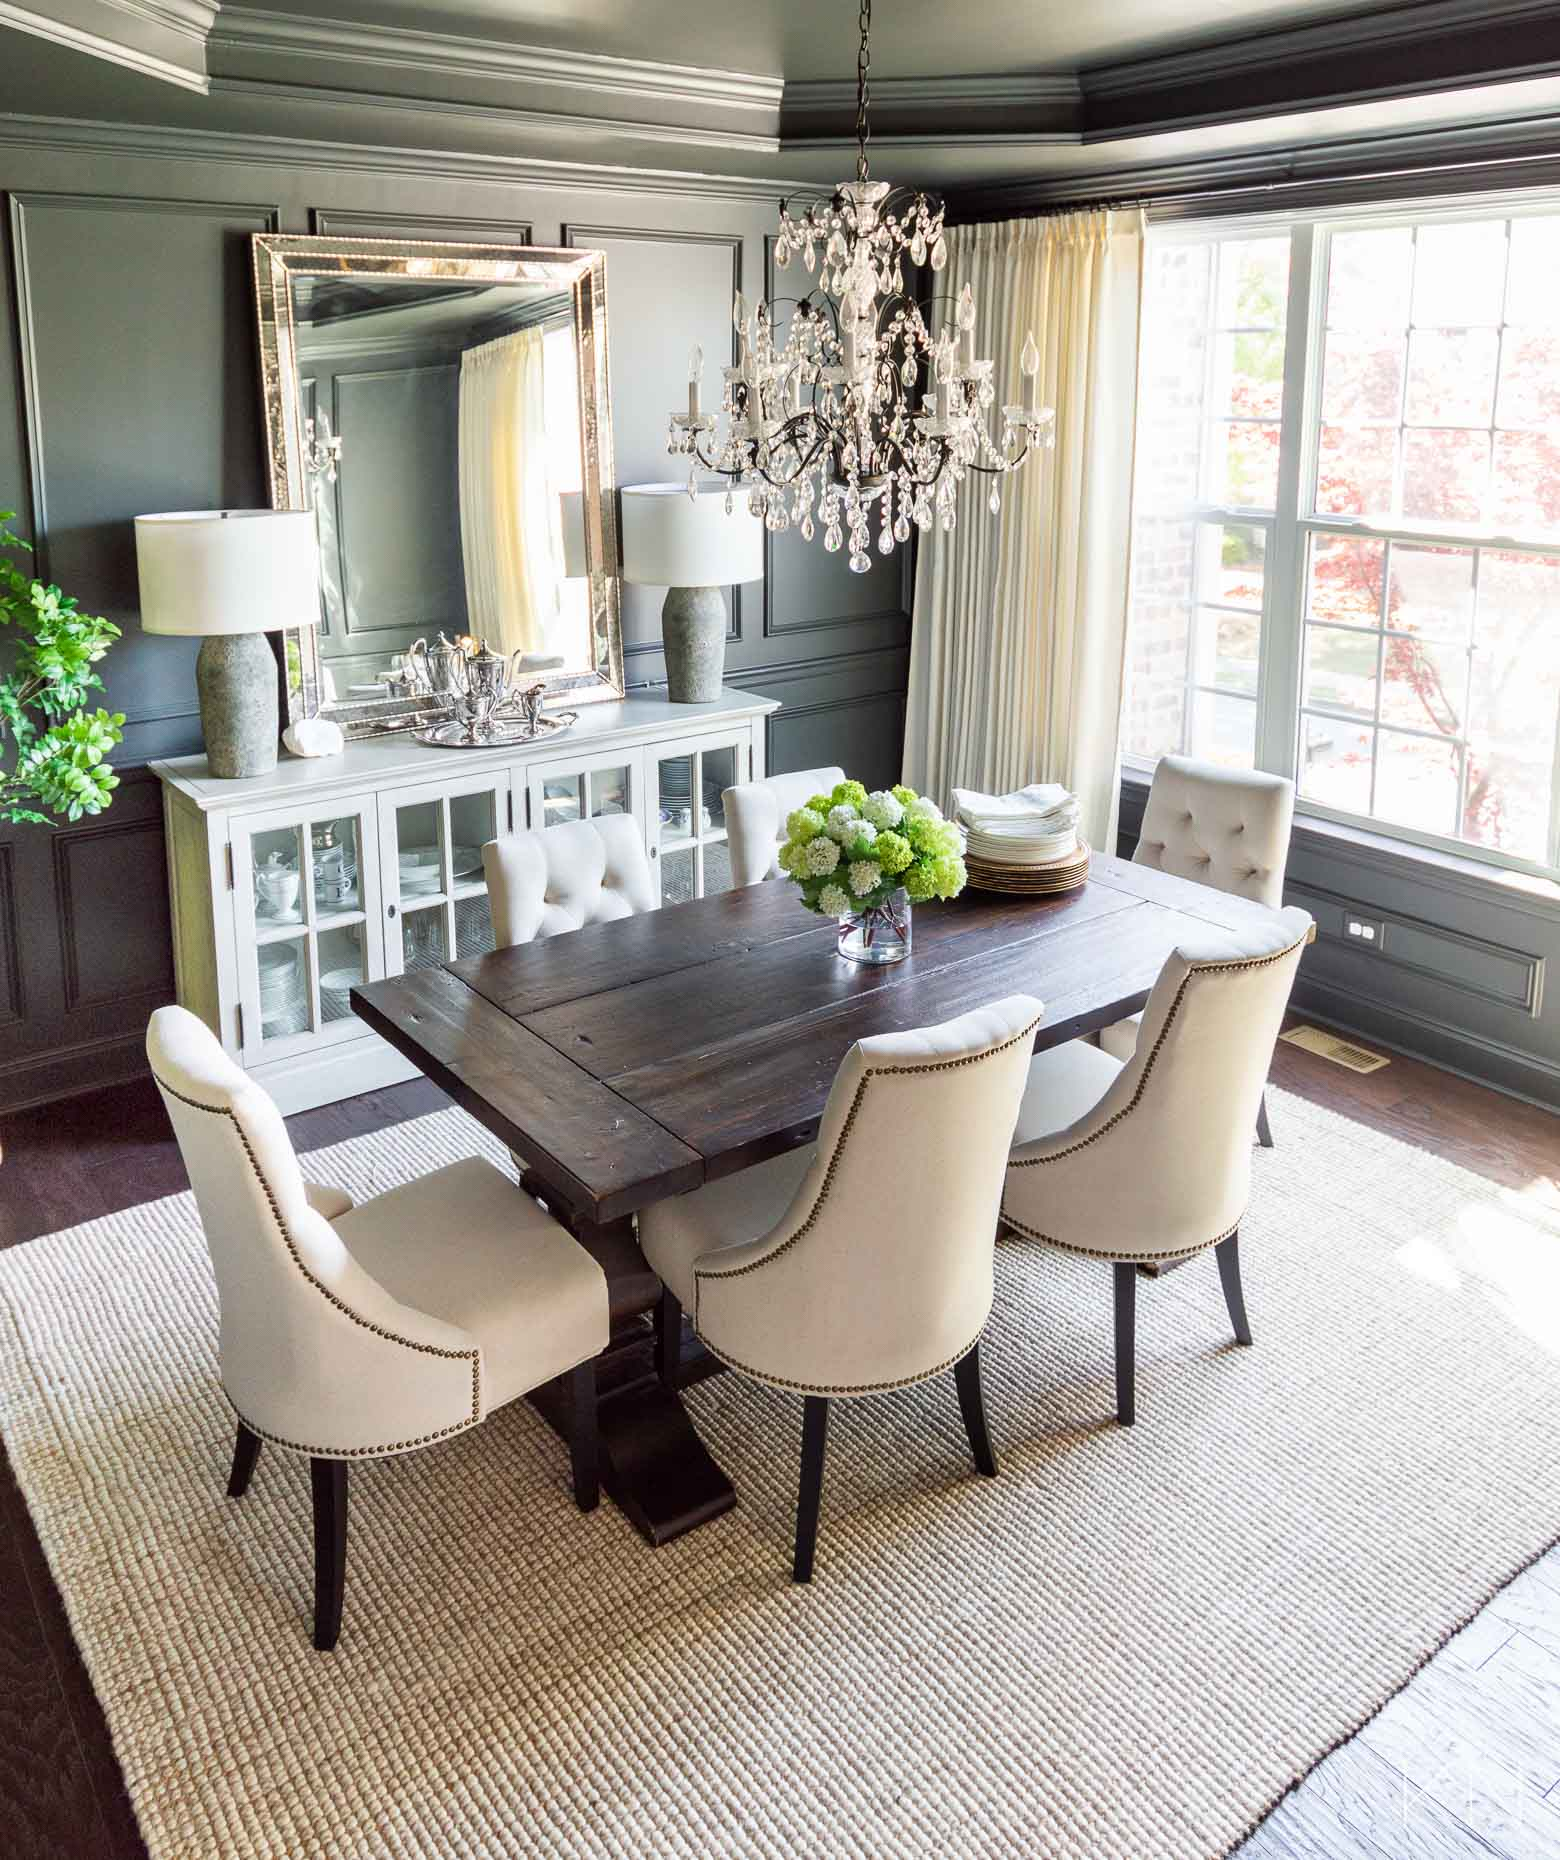 Dining Room Reveal in Sherwin Williams Iron Ore